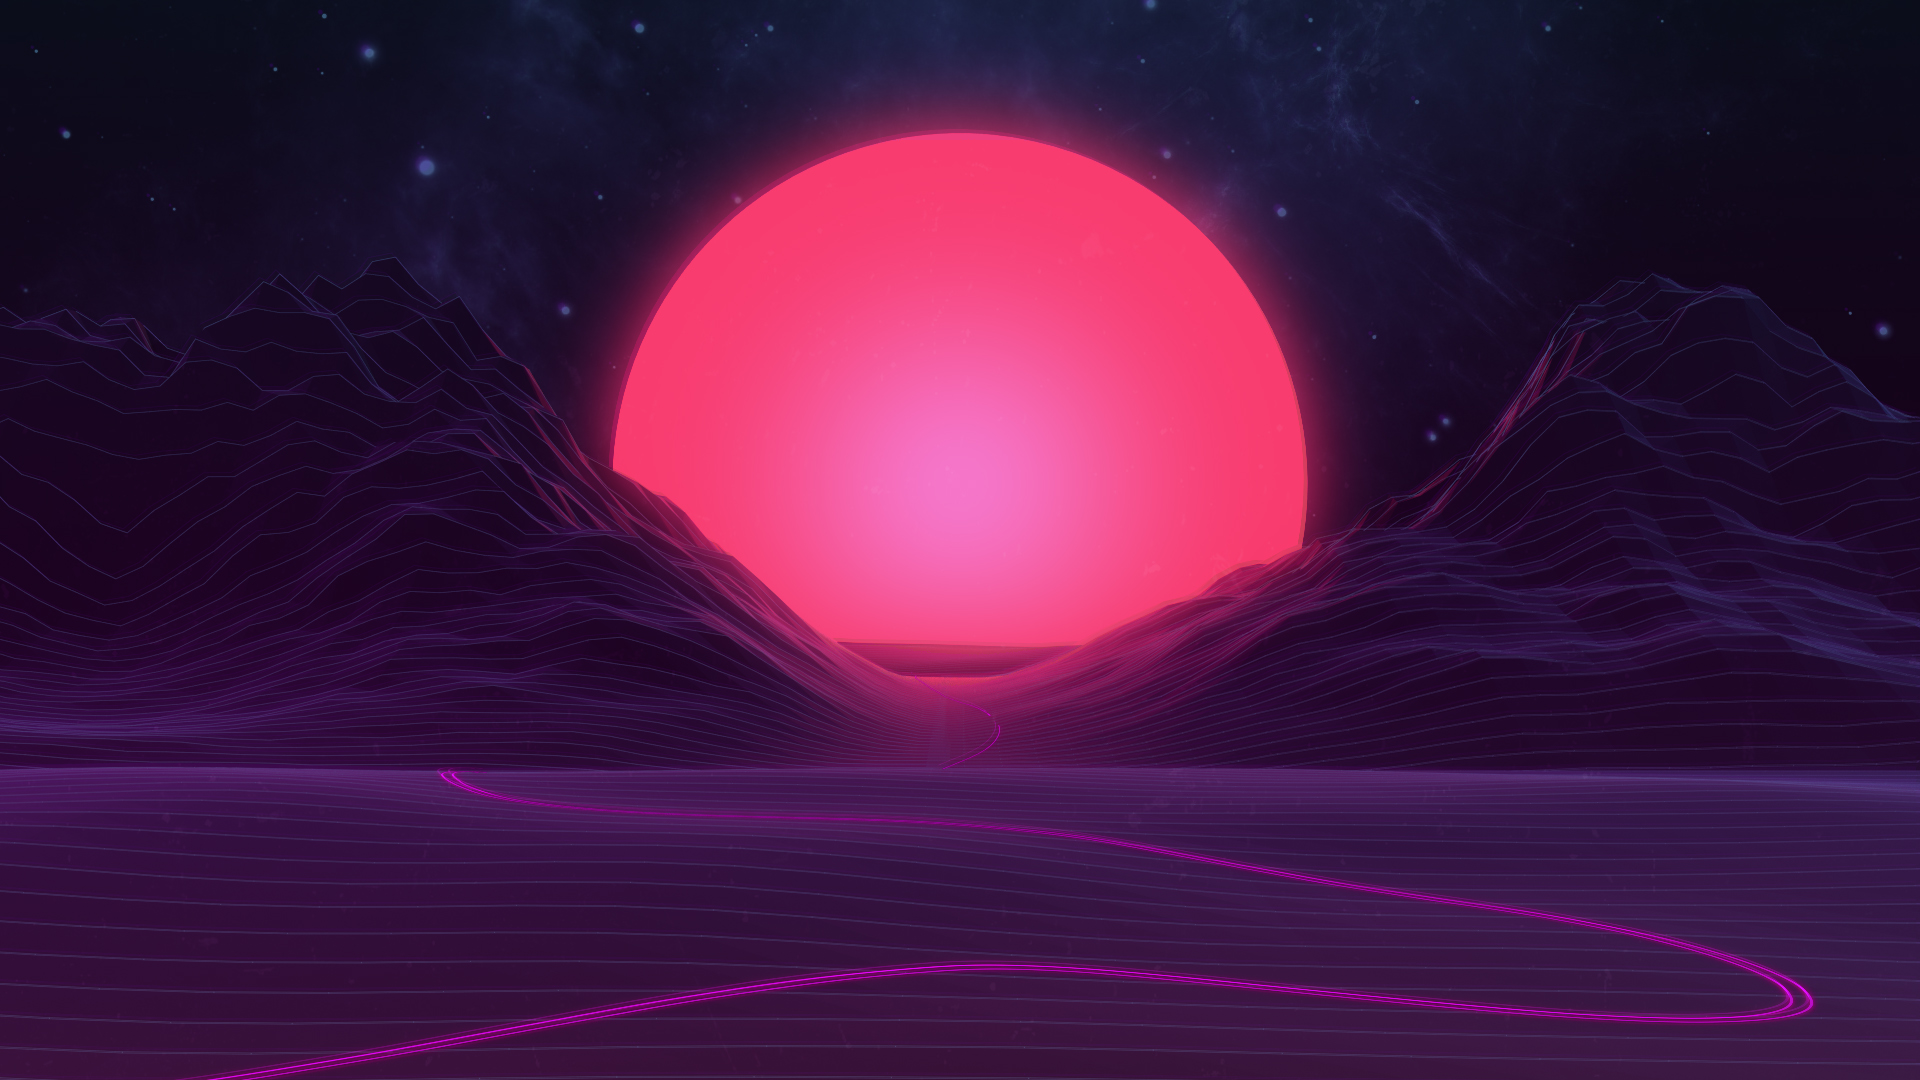 Aesthetic Sunset Laptop Wallpaper Nosirix